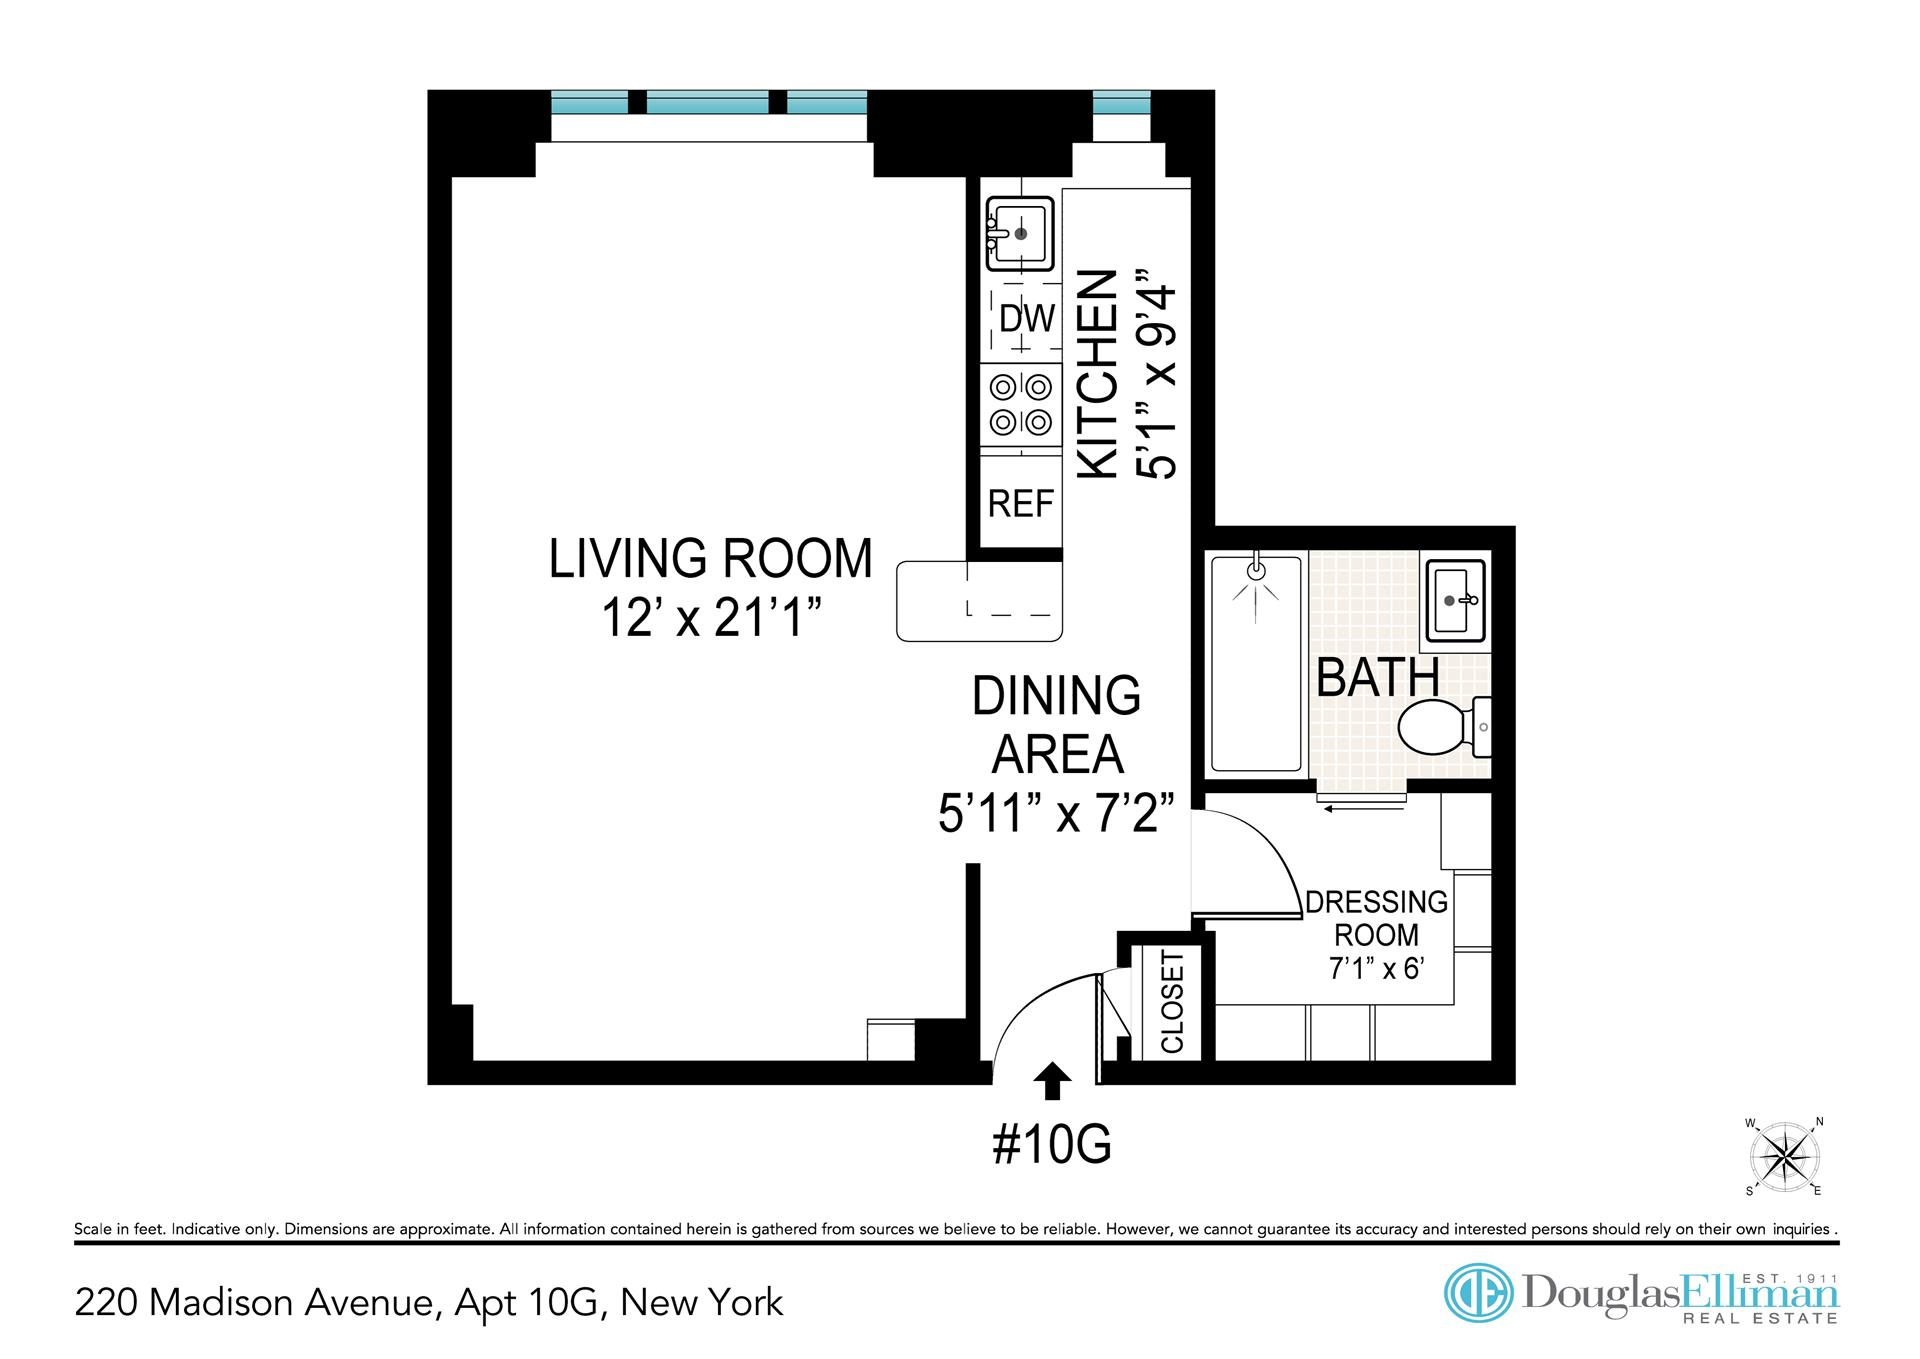 Floor plan of 220 Madison Avenue, 10G - Murray Hill, New York